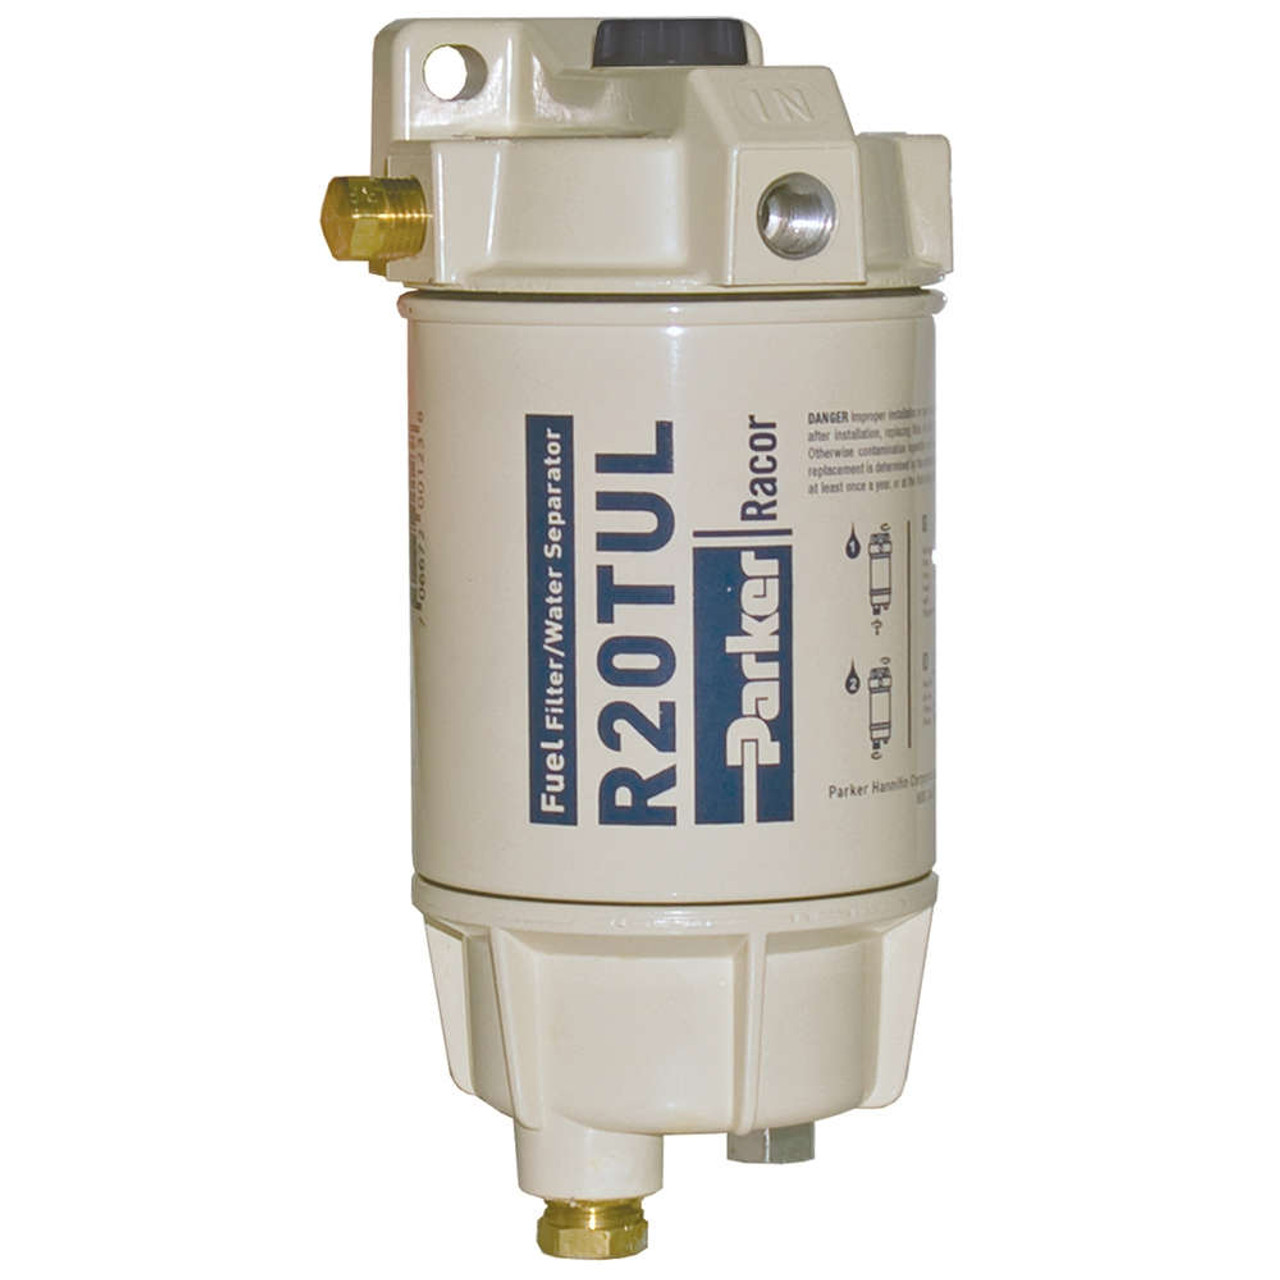 hight resolution of racor 1 4 in 30 gph aquabloc marine spin on type diesel fuel filter water separator assembly 6 qty john m ellsworth co inc